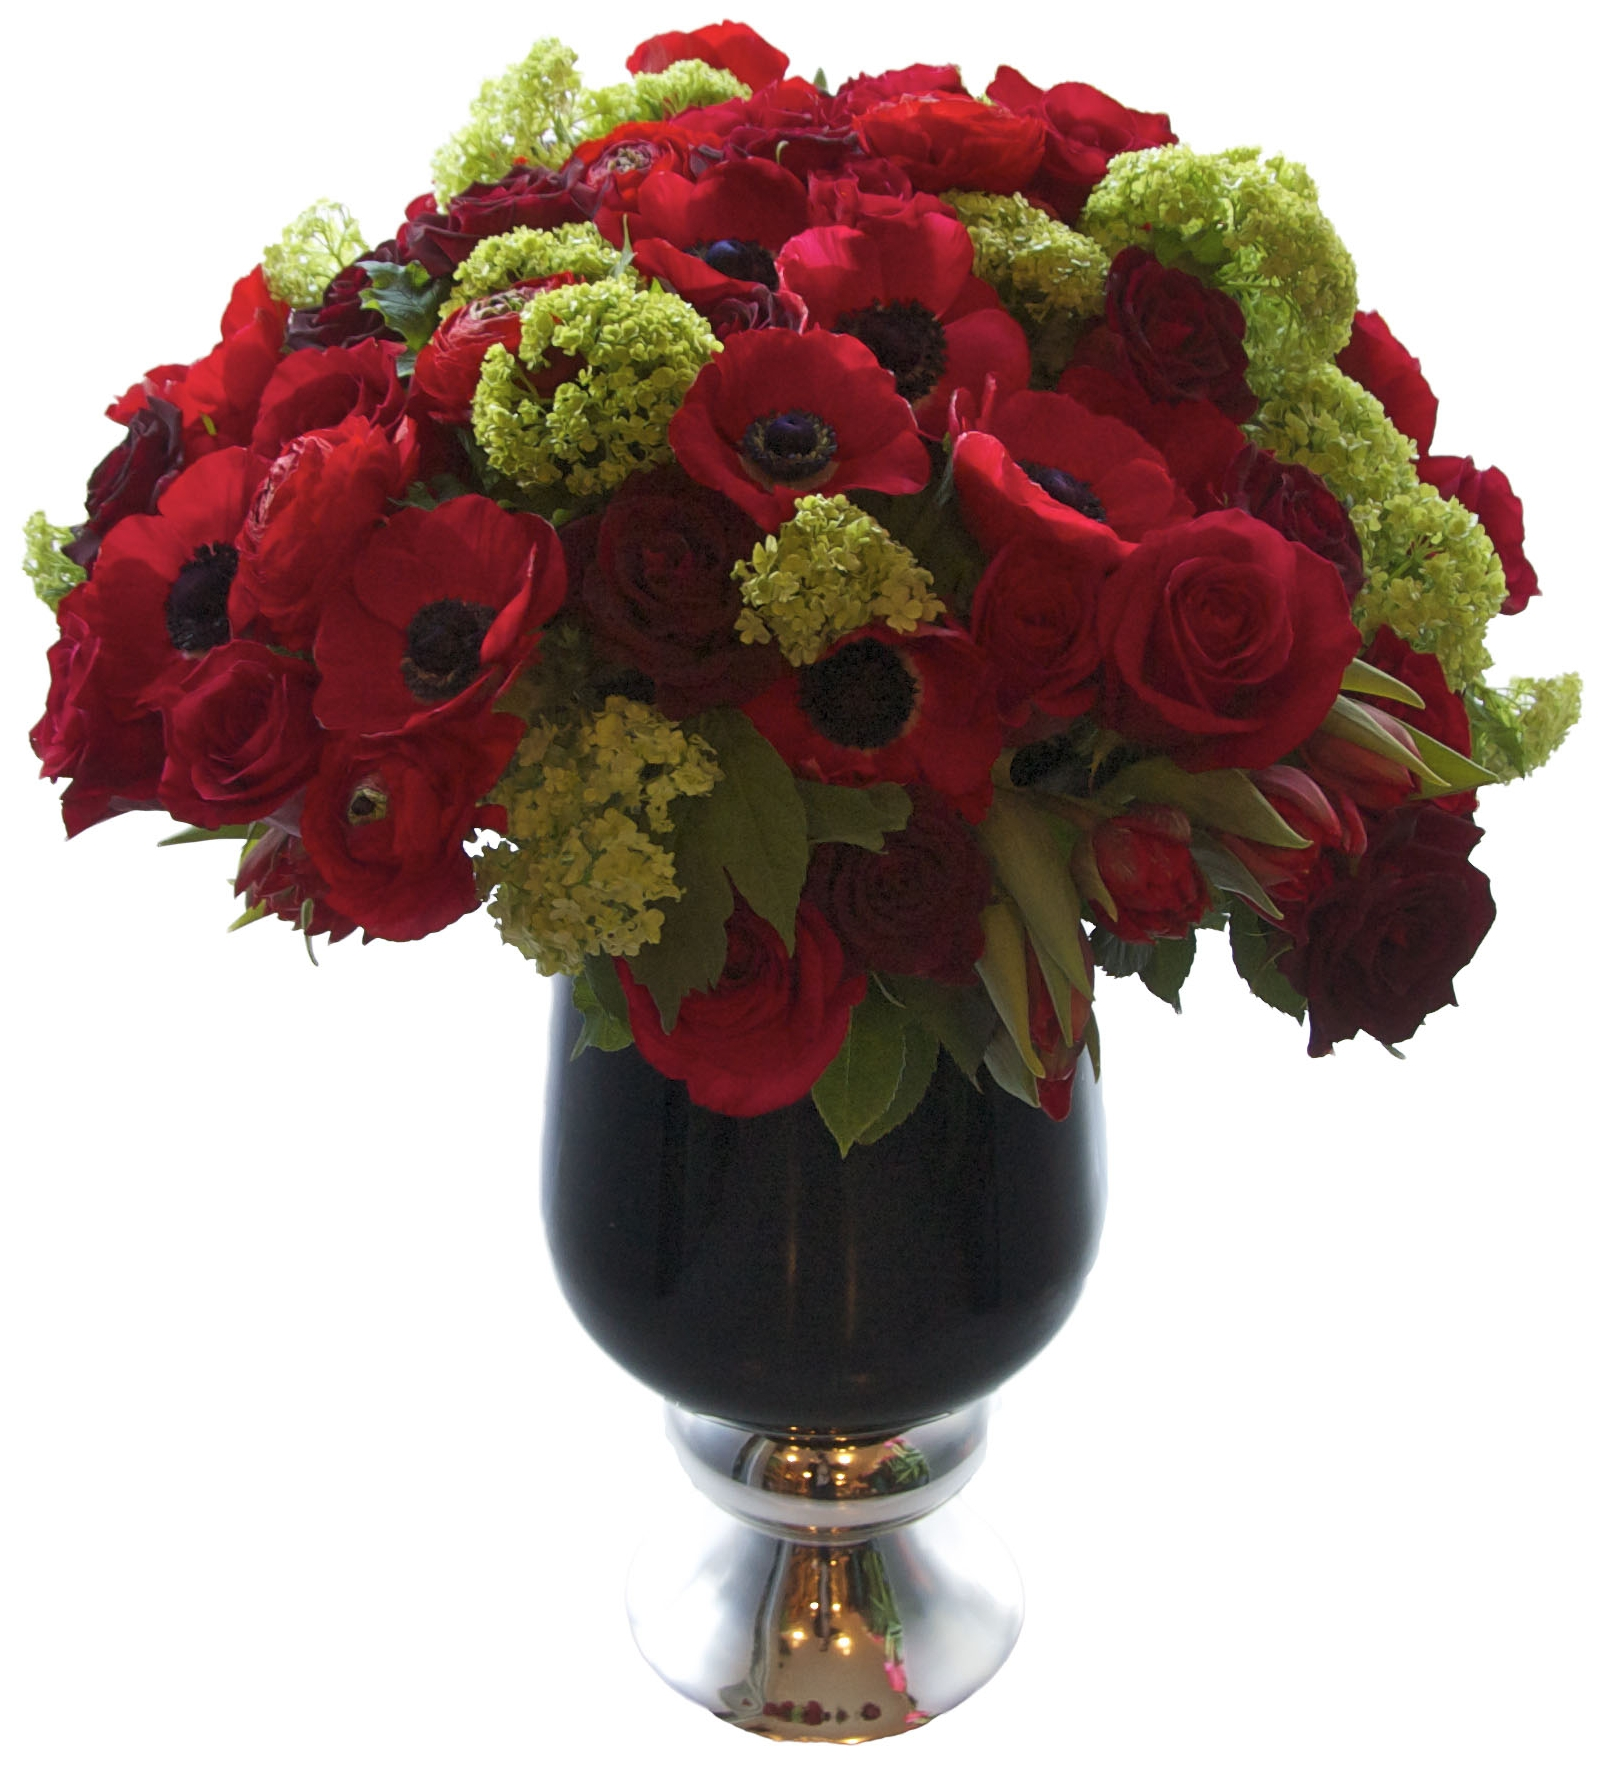 Anemones, Roses and Hydrangea start at $375